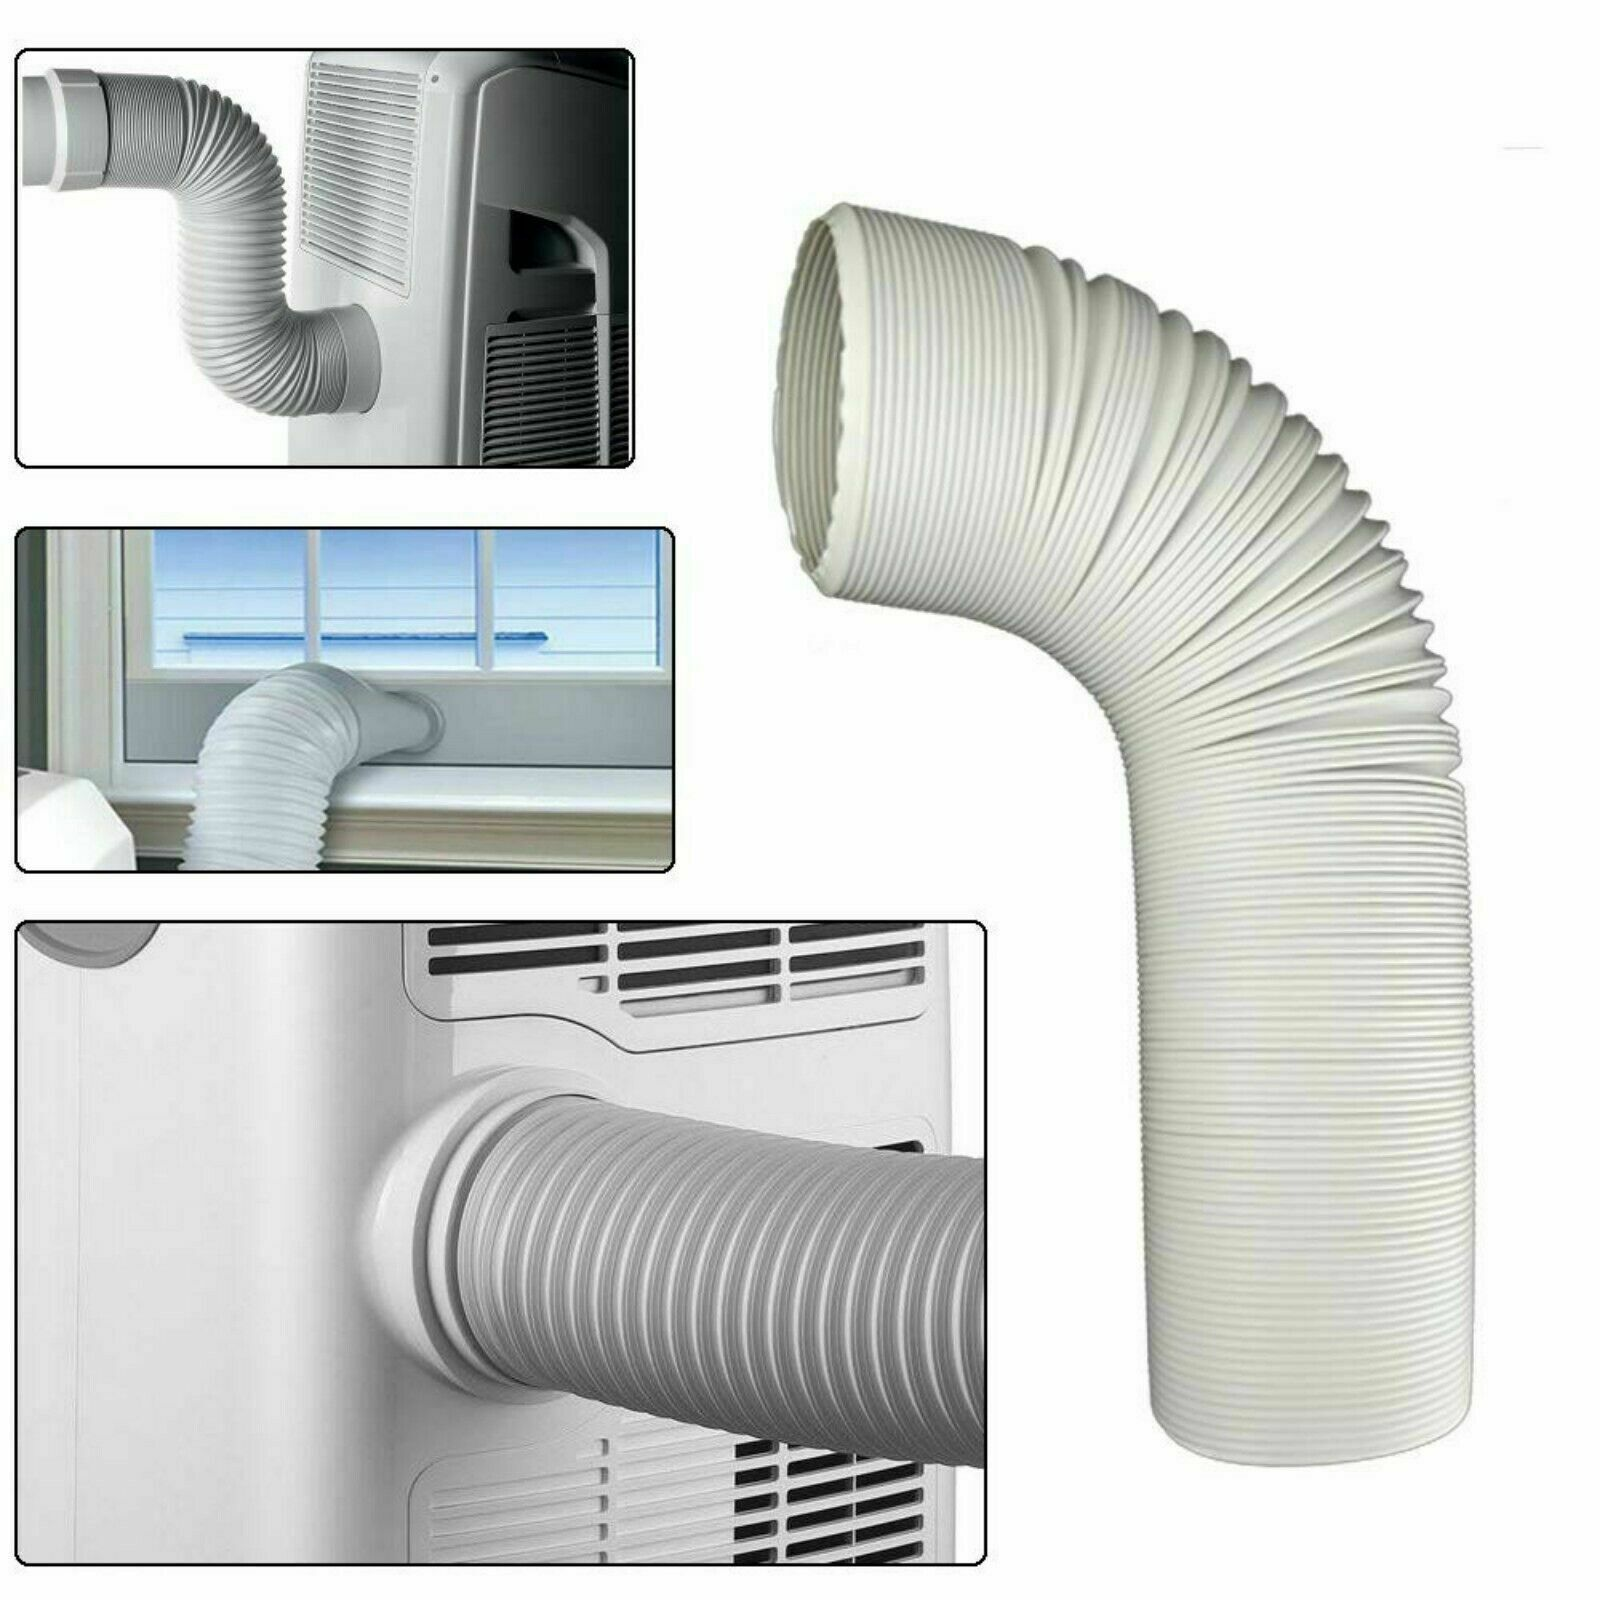 Details about Exhaust Hose 5 9 inch Diameter AC Unit Duct For Portable Air  Conditioner Parts